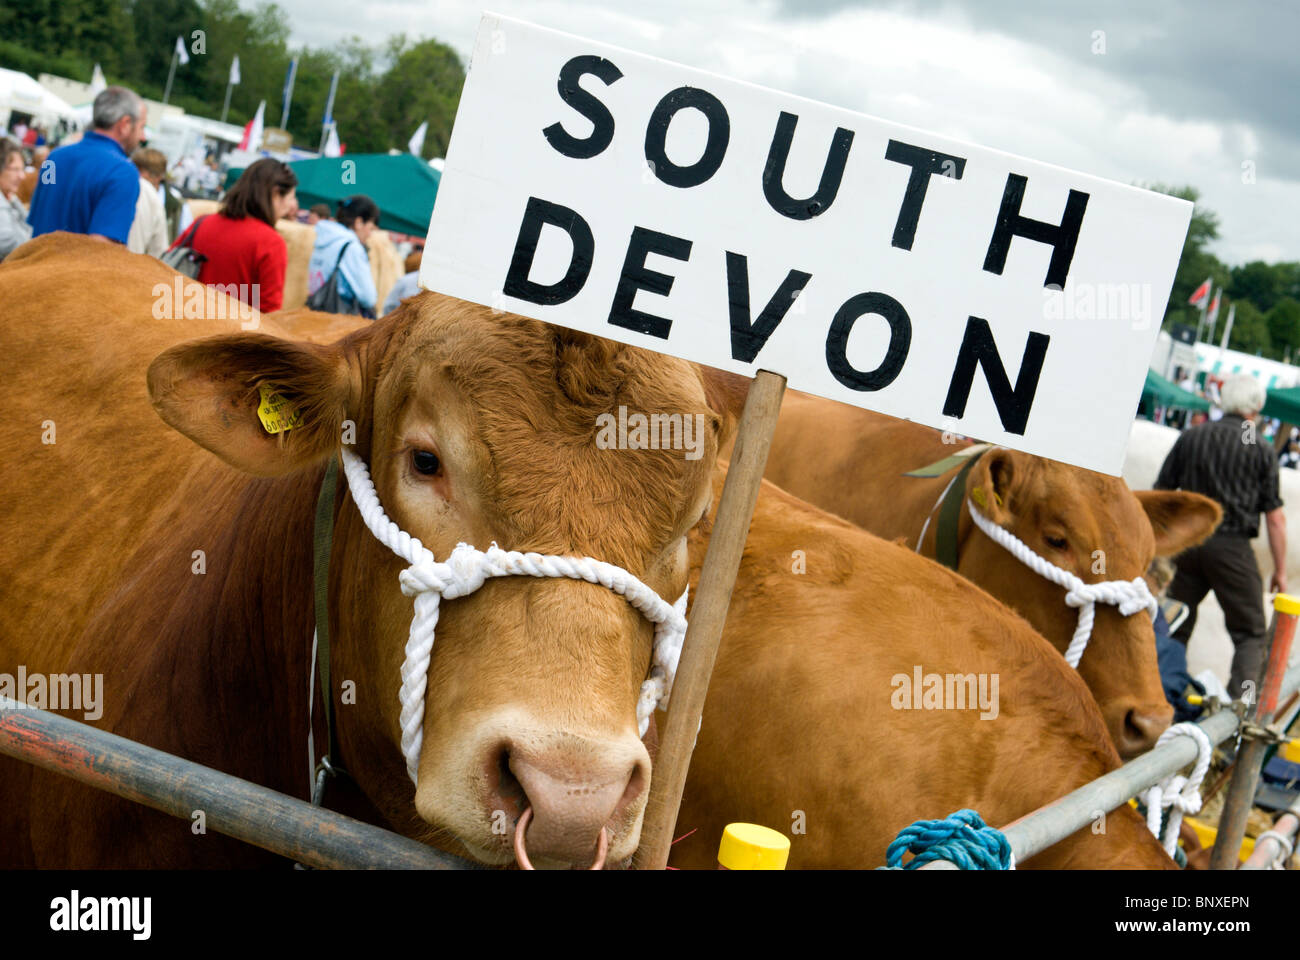 South Devon Cattle at a country show in Mid Devon - Stock Image